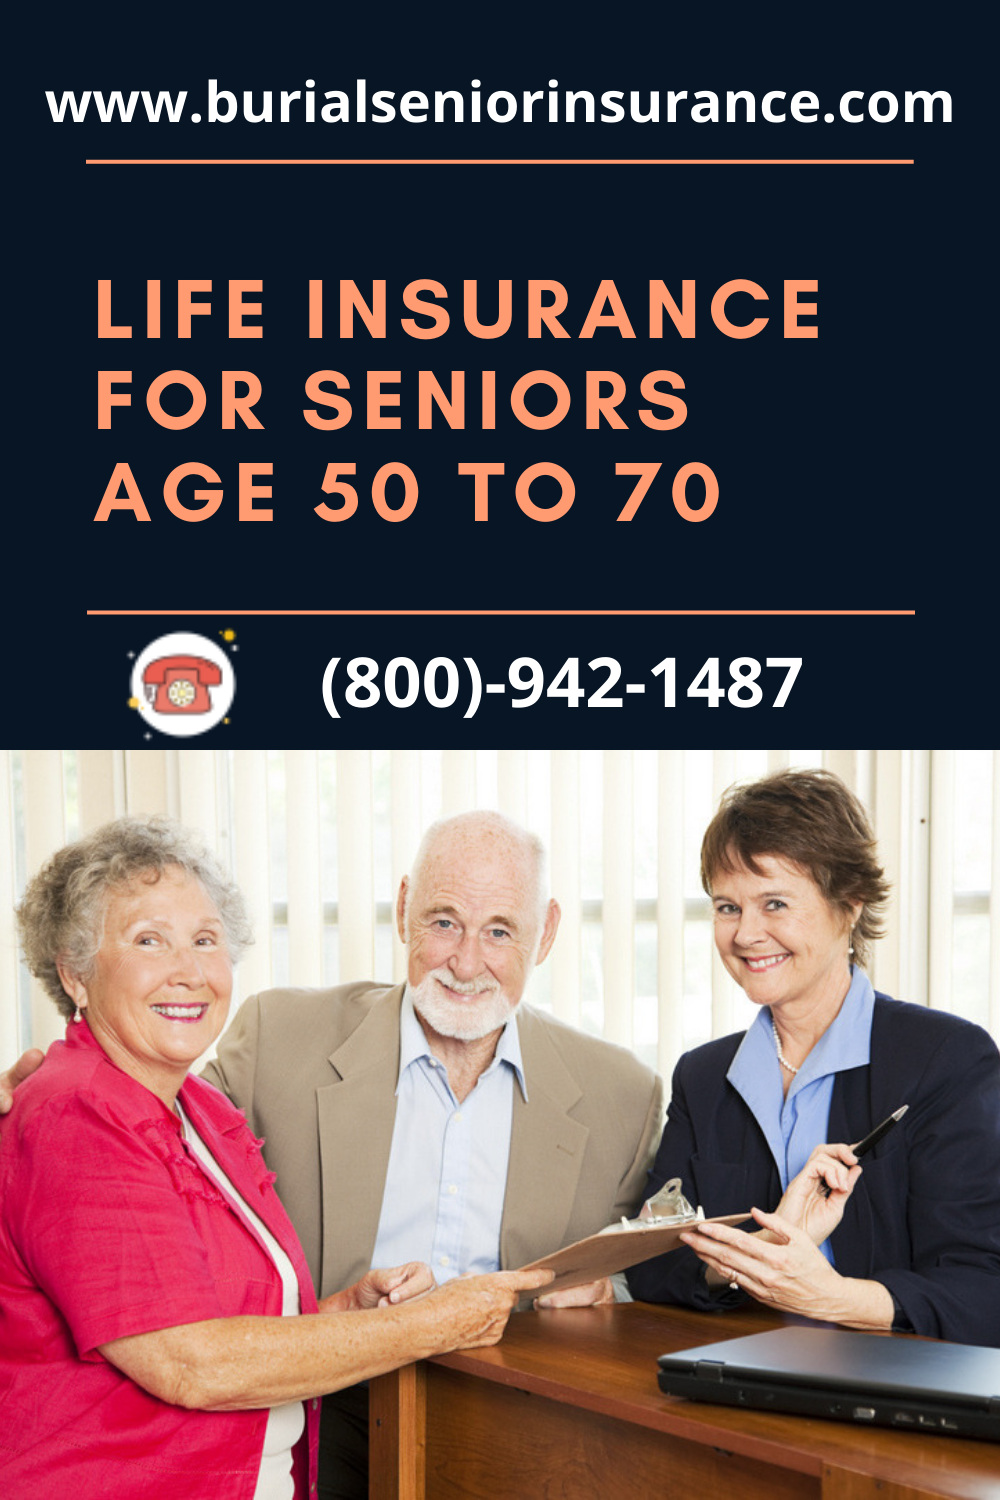 Life Insurance For Seniors Age 50 To 70 in 2020 Life